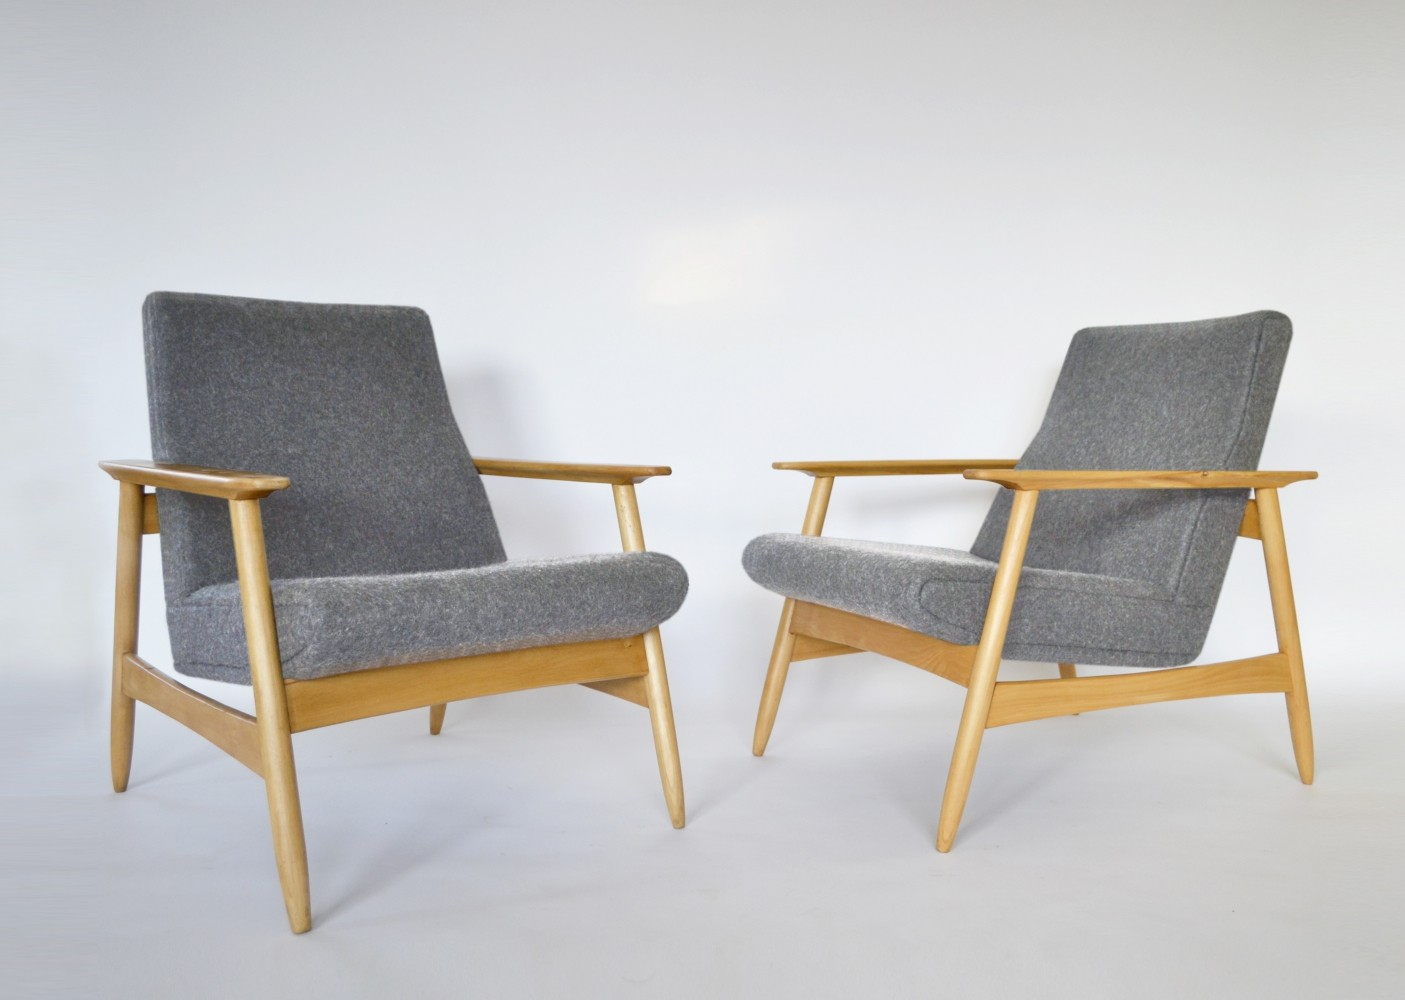 Pair of Light Grey Felt & Beech Armchairs by Valerija Ema Cukermanienė, 1960s